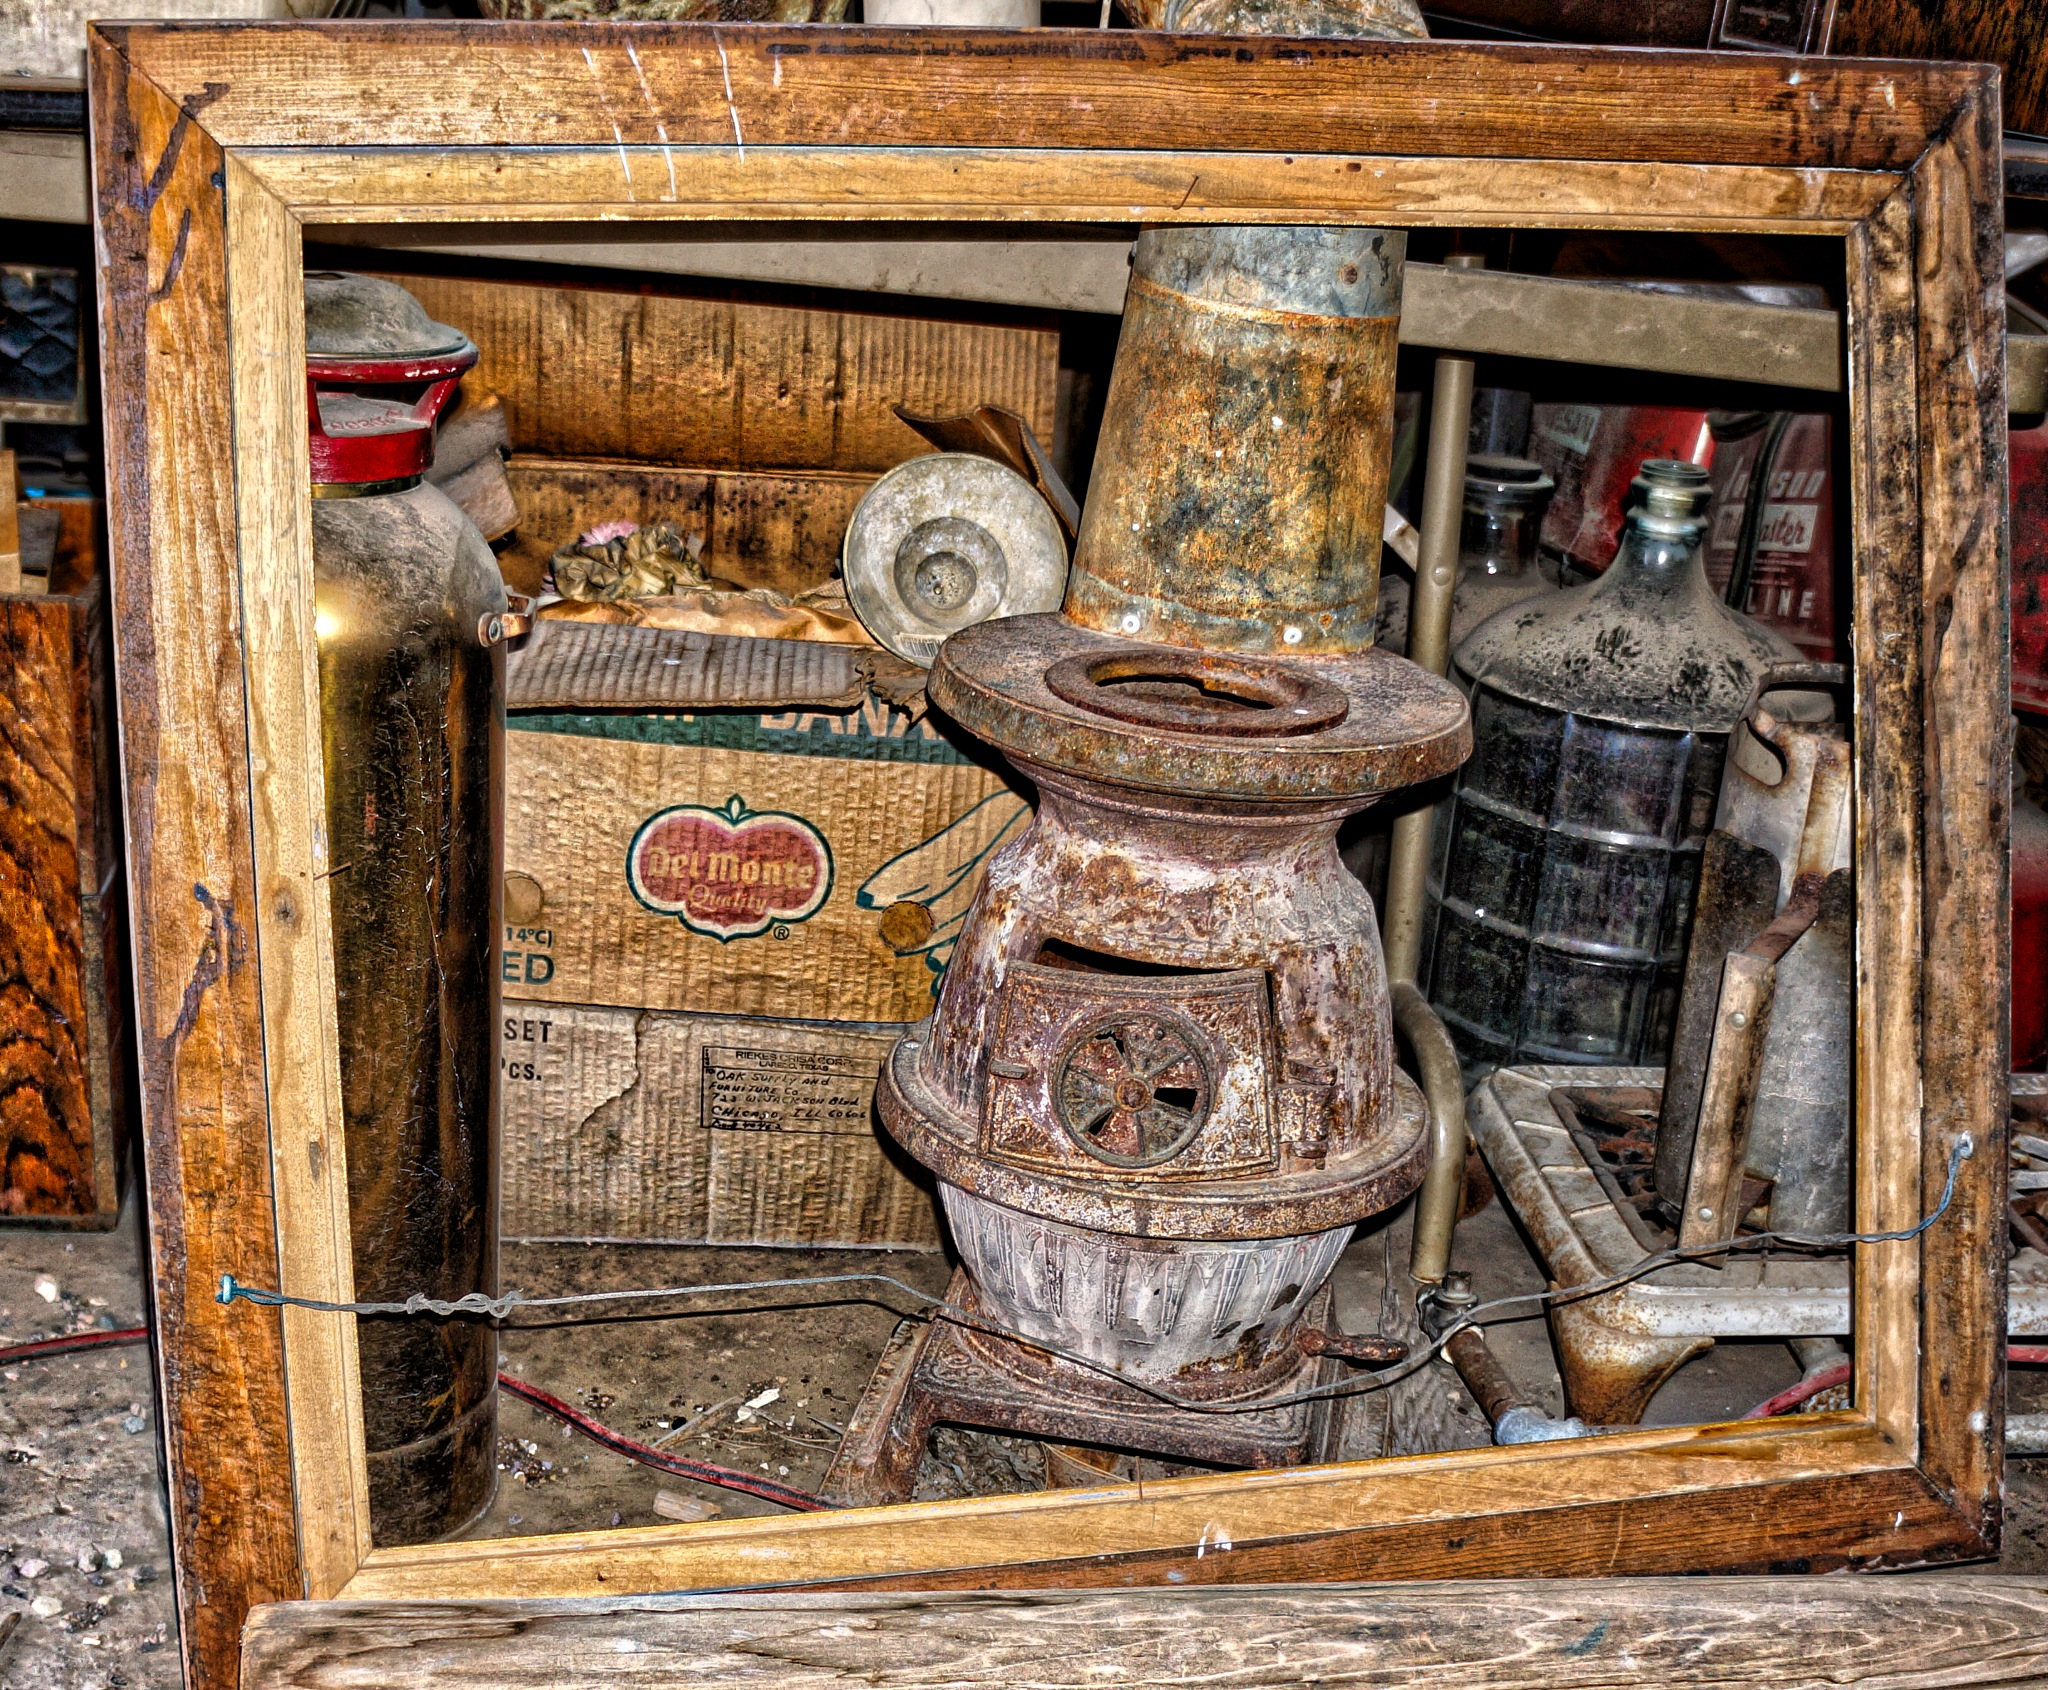 Olde Wood Stove by Harrison Hanville